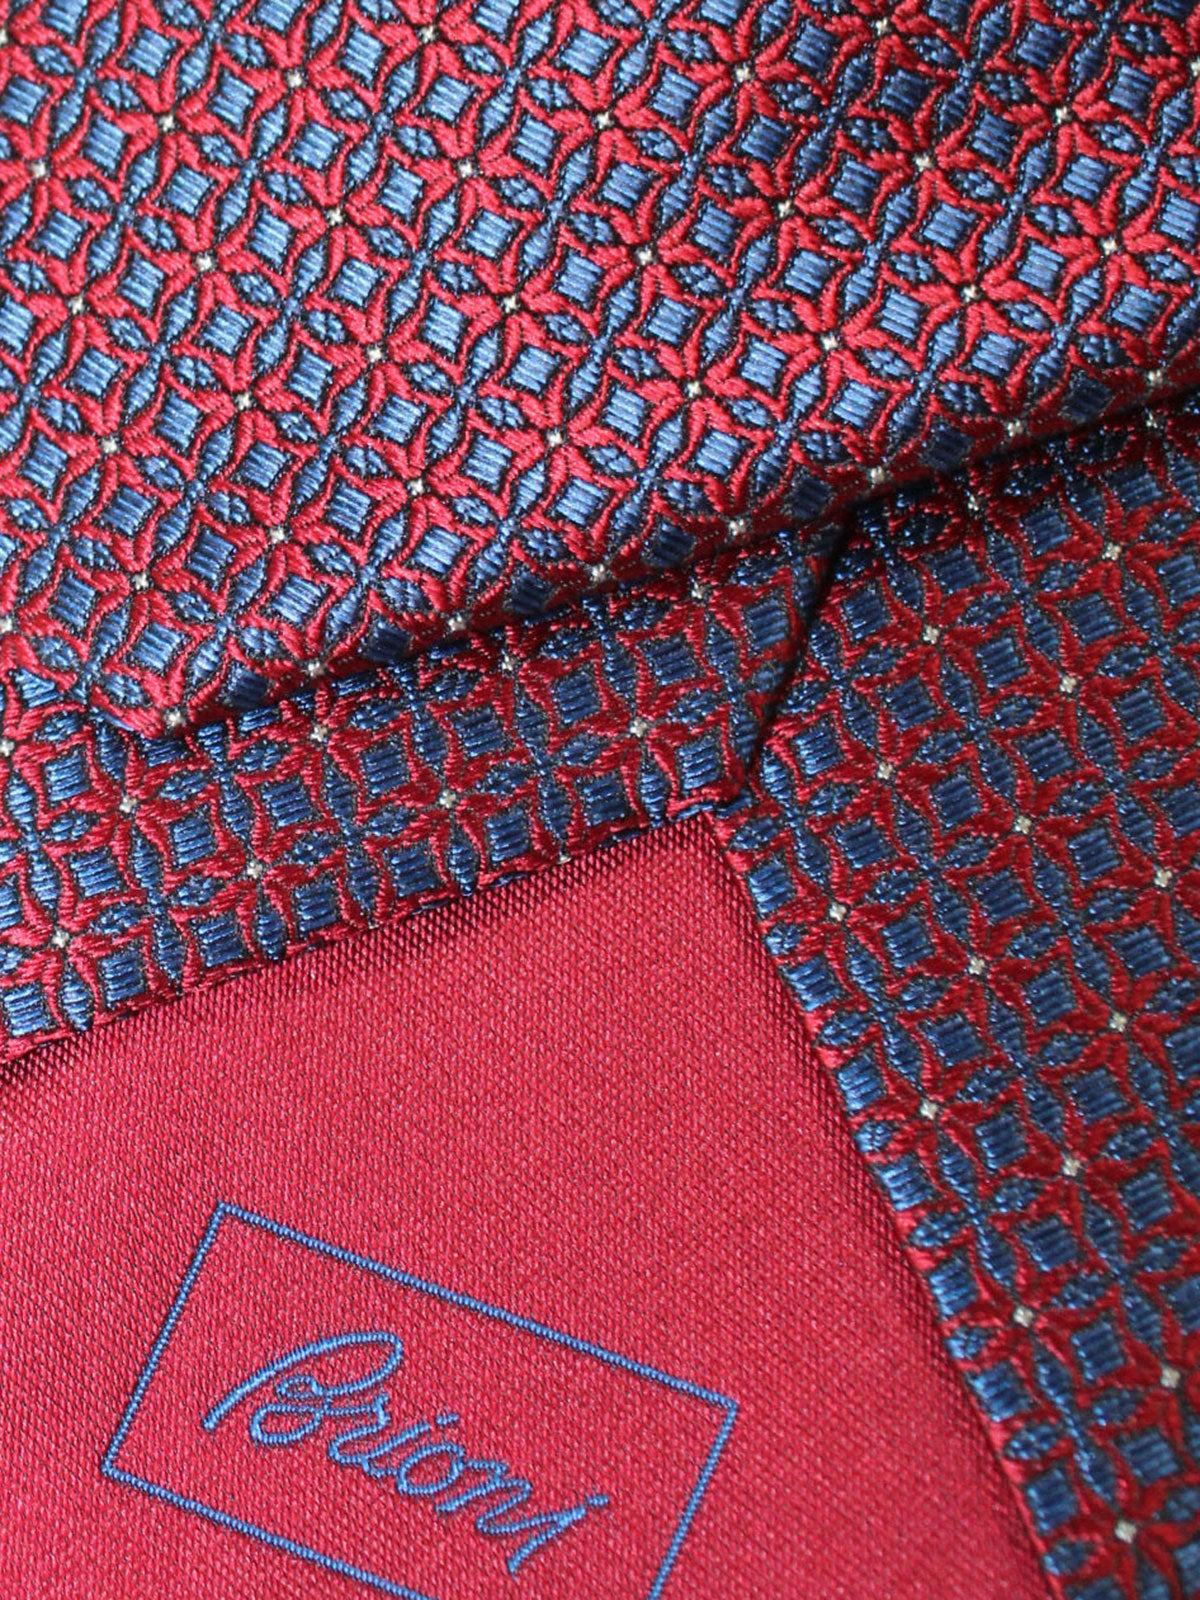 Brioni Silk Tie Red Navy Geometric Design